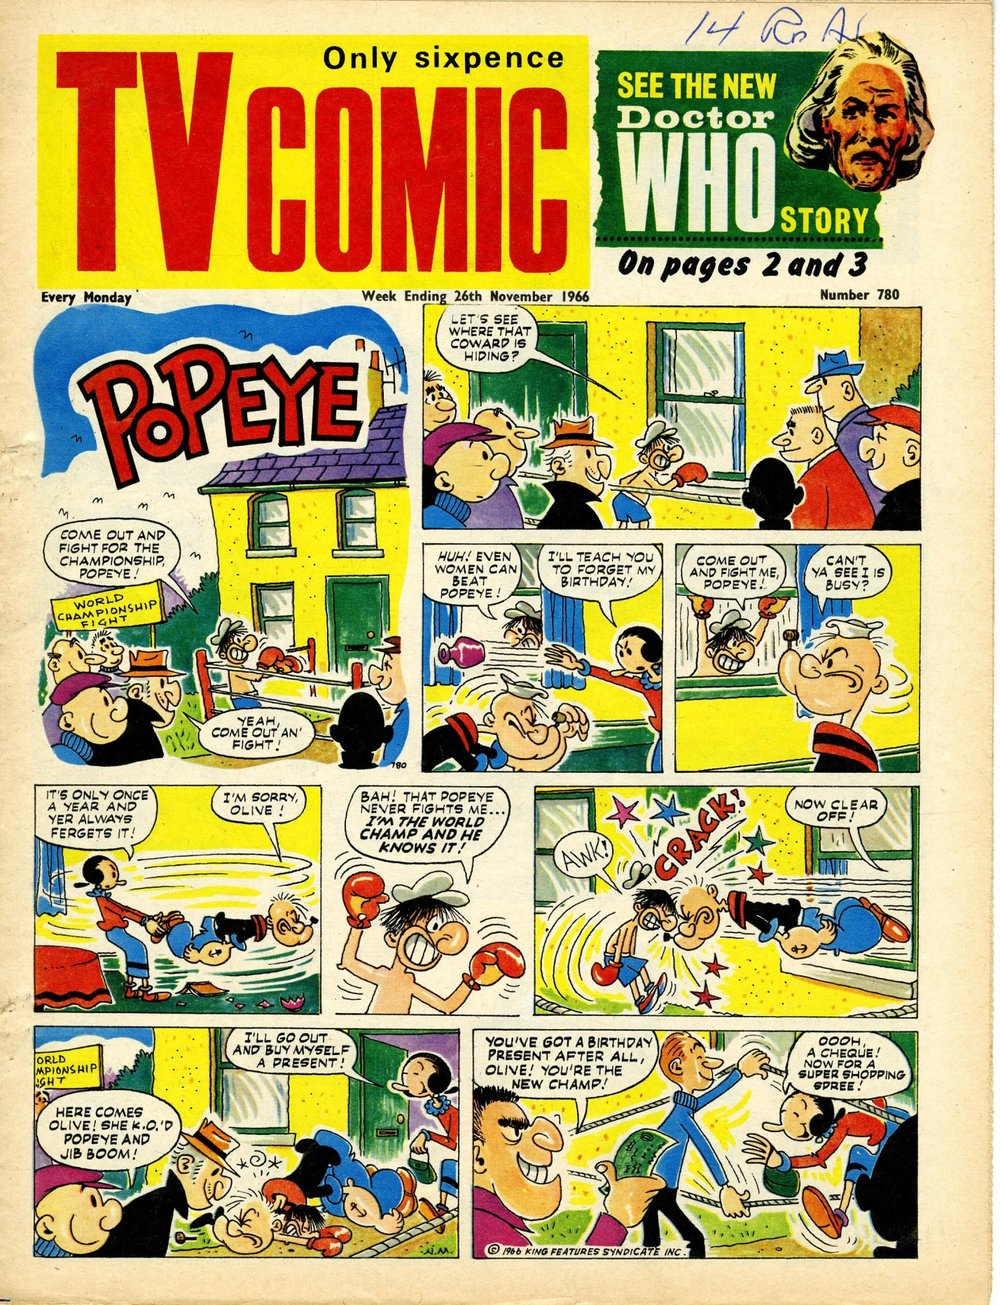 TV Comic, no. 780, 26 November 1966